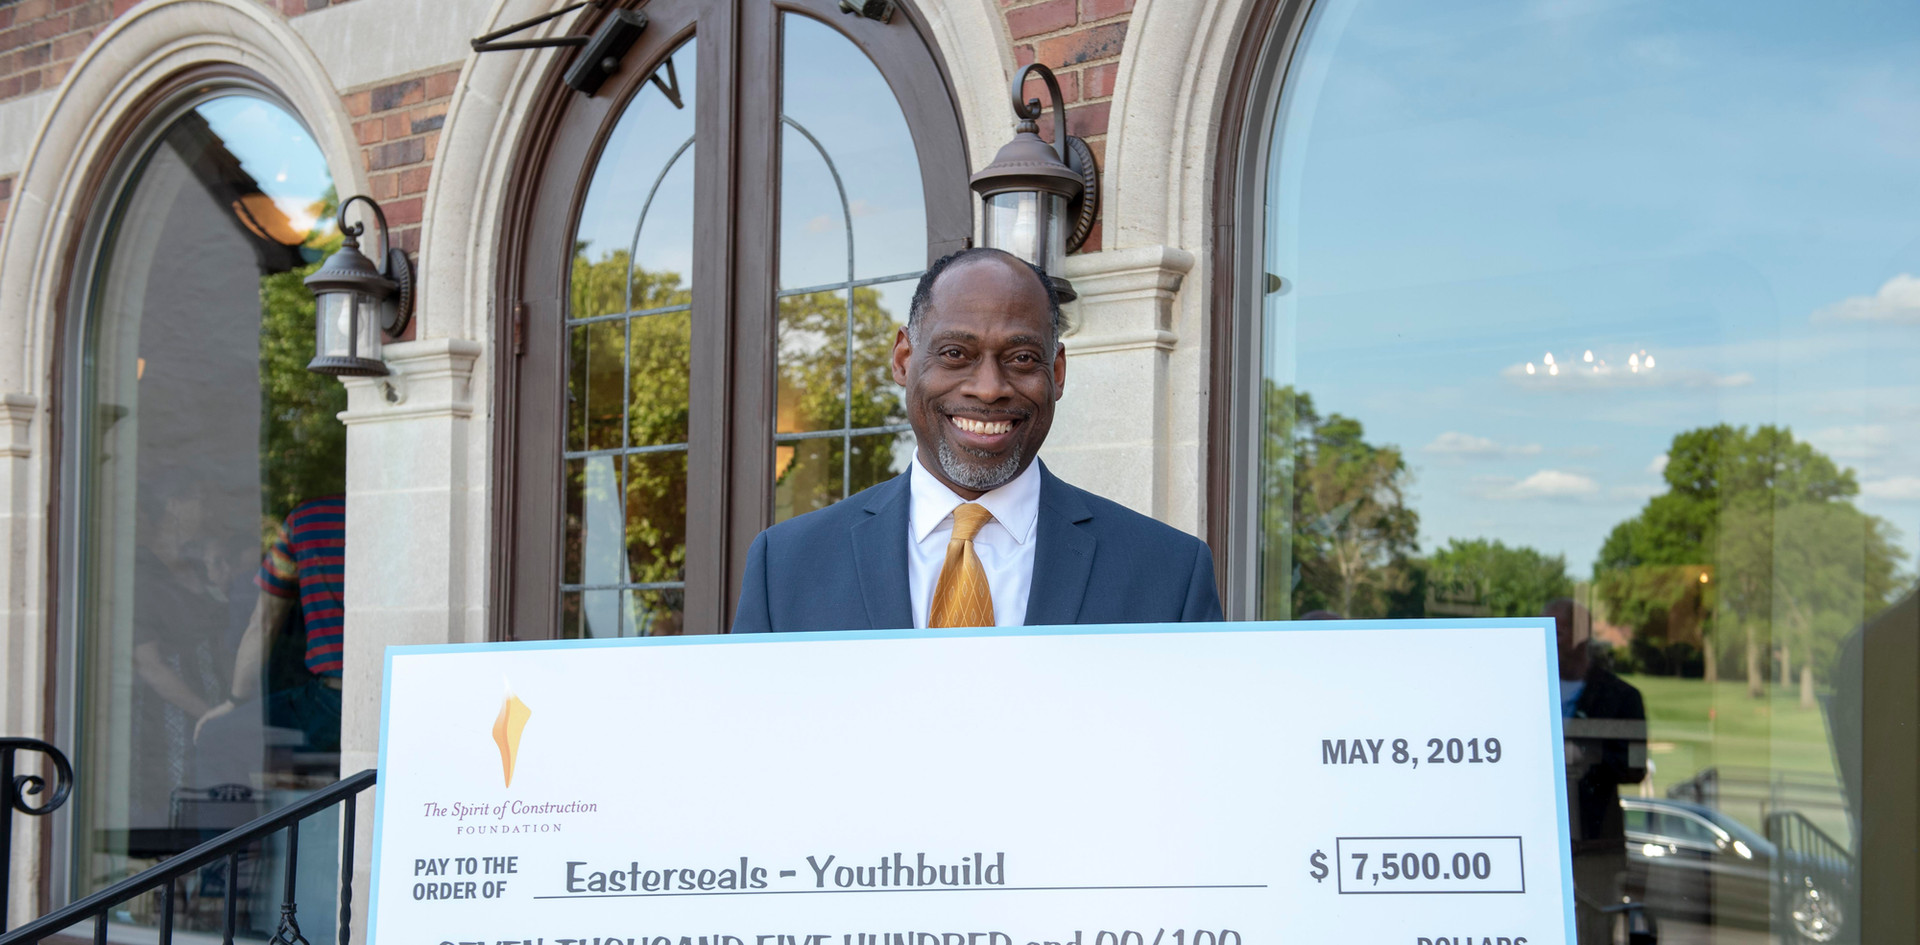 Easterseals - Youthbuild